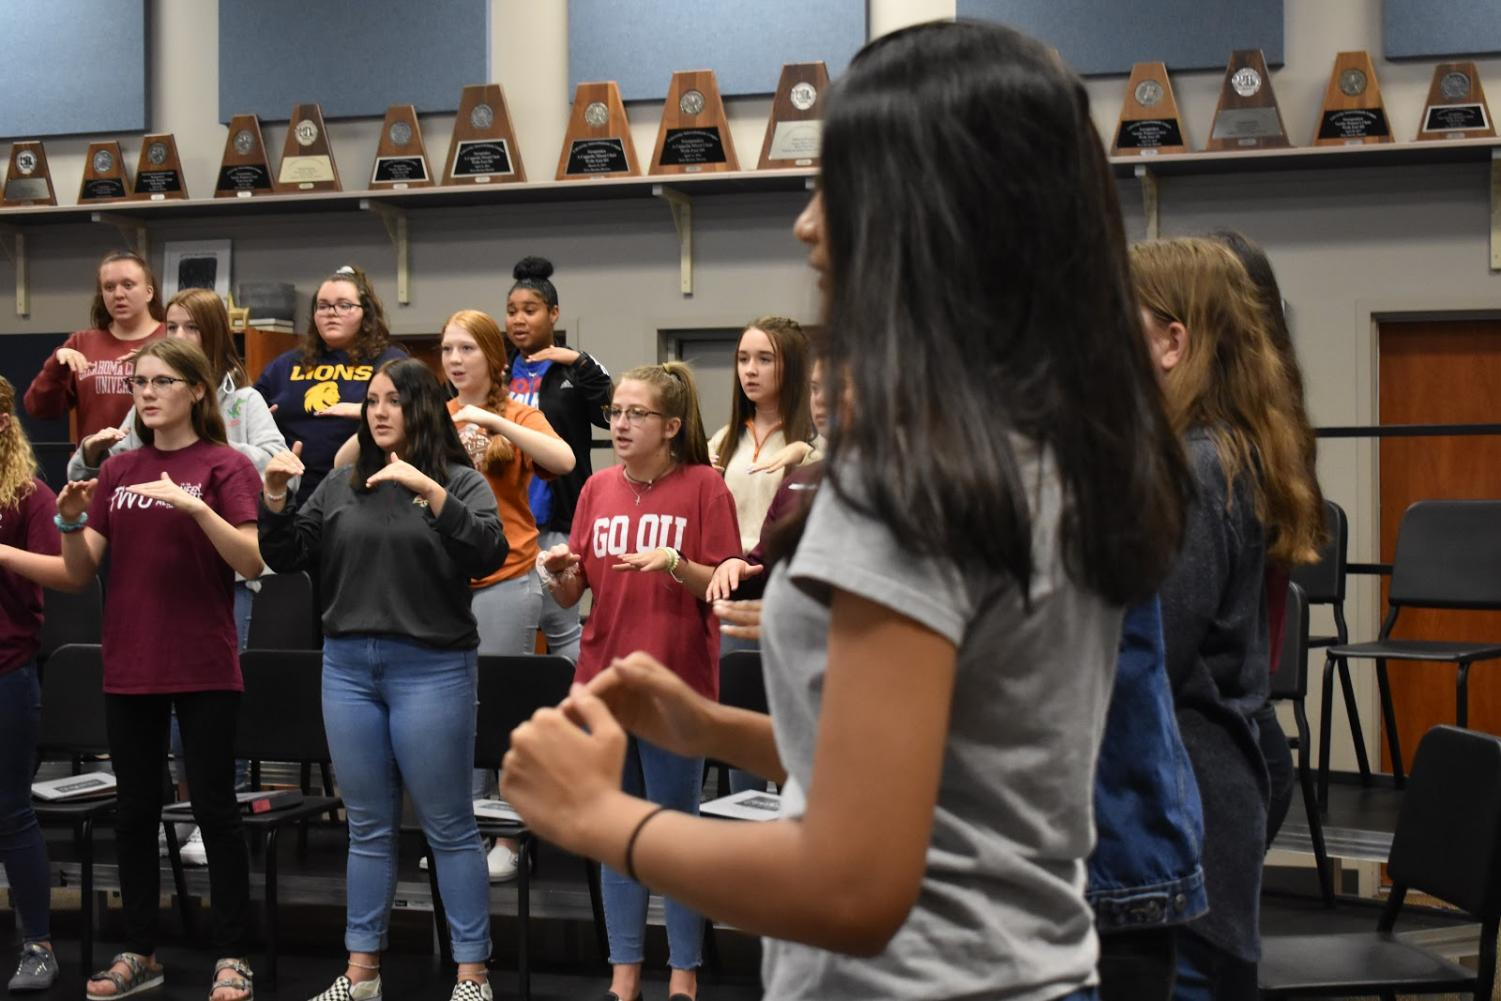 Singalong \\ Practicing hand signs Aug. 29 in the choir room, Bel Canto girls get back into the hang of things for this year's Ignite theme.